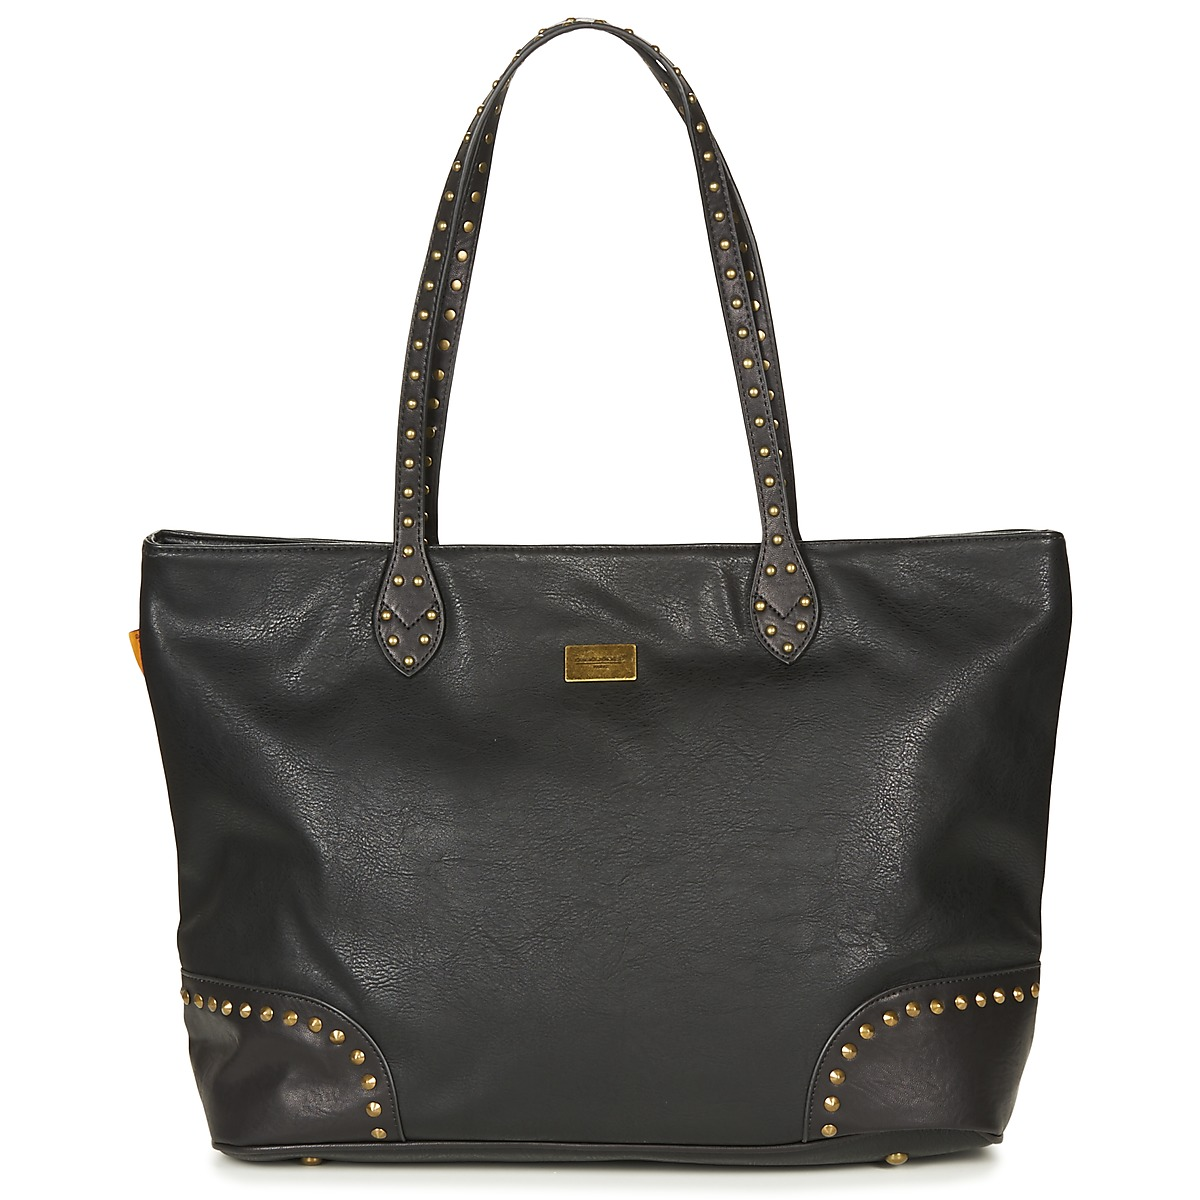 Borsa Shopping donna David Jones  -  Nero